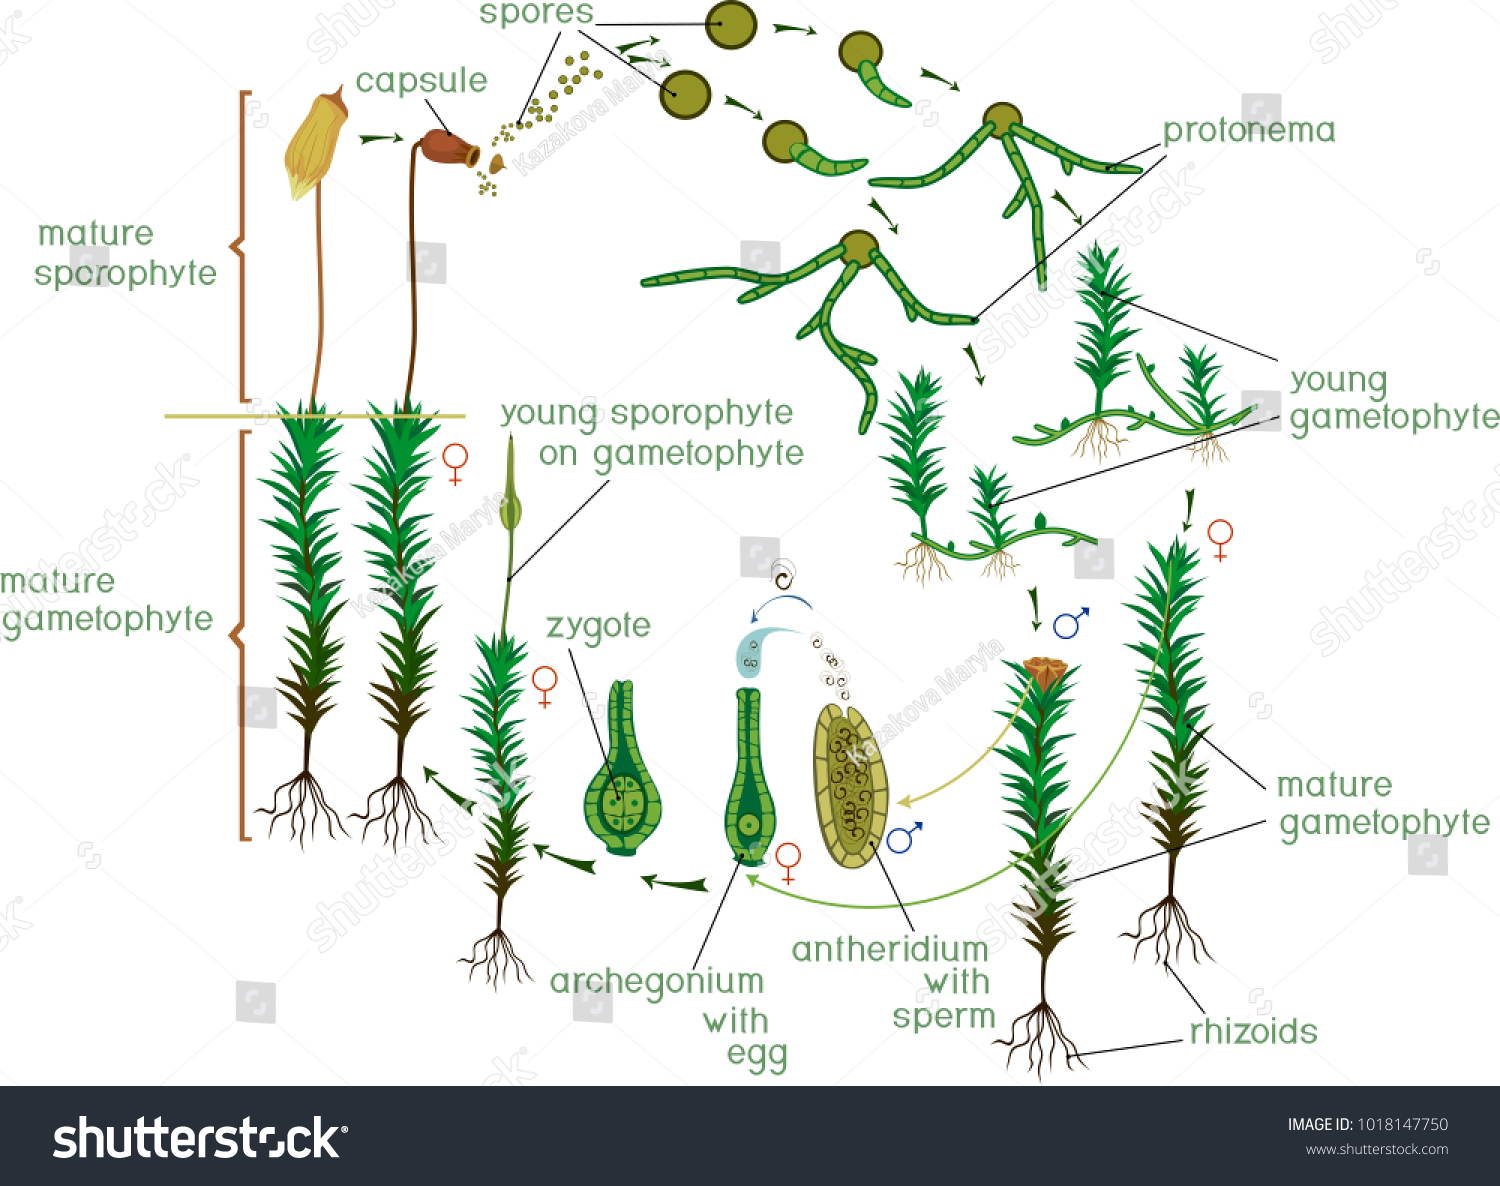 Fern life cycle diagram choice image diagram design ideas moss life cycle diagram life cycle stock vector 1018147750 moss life cycle diagram of a life pooptronica Choice Image